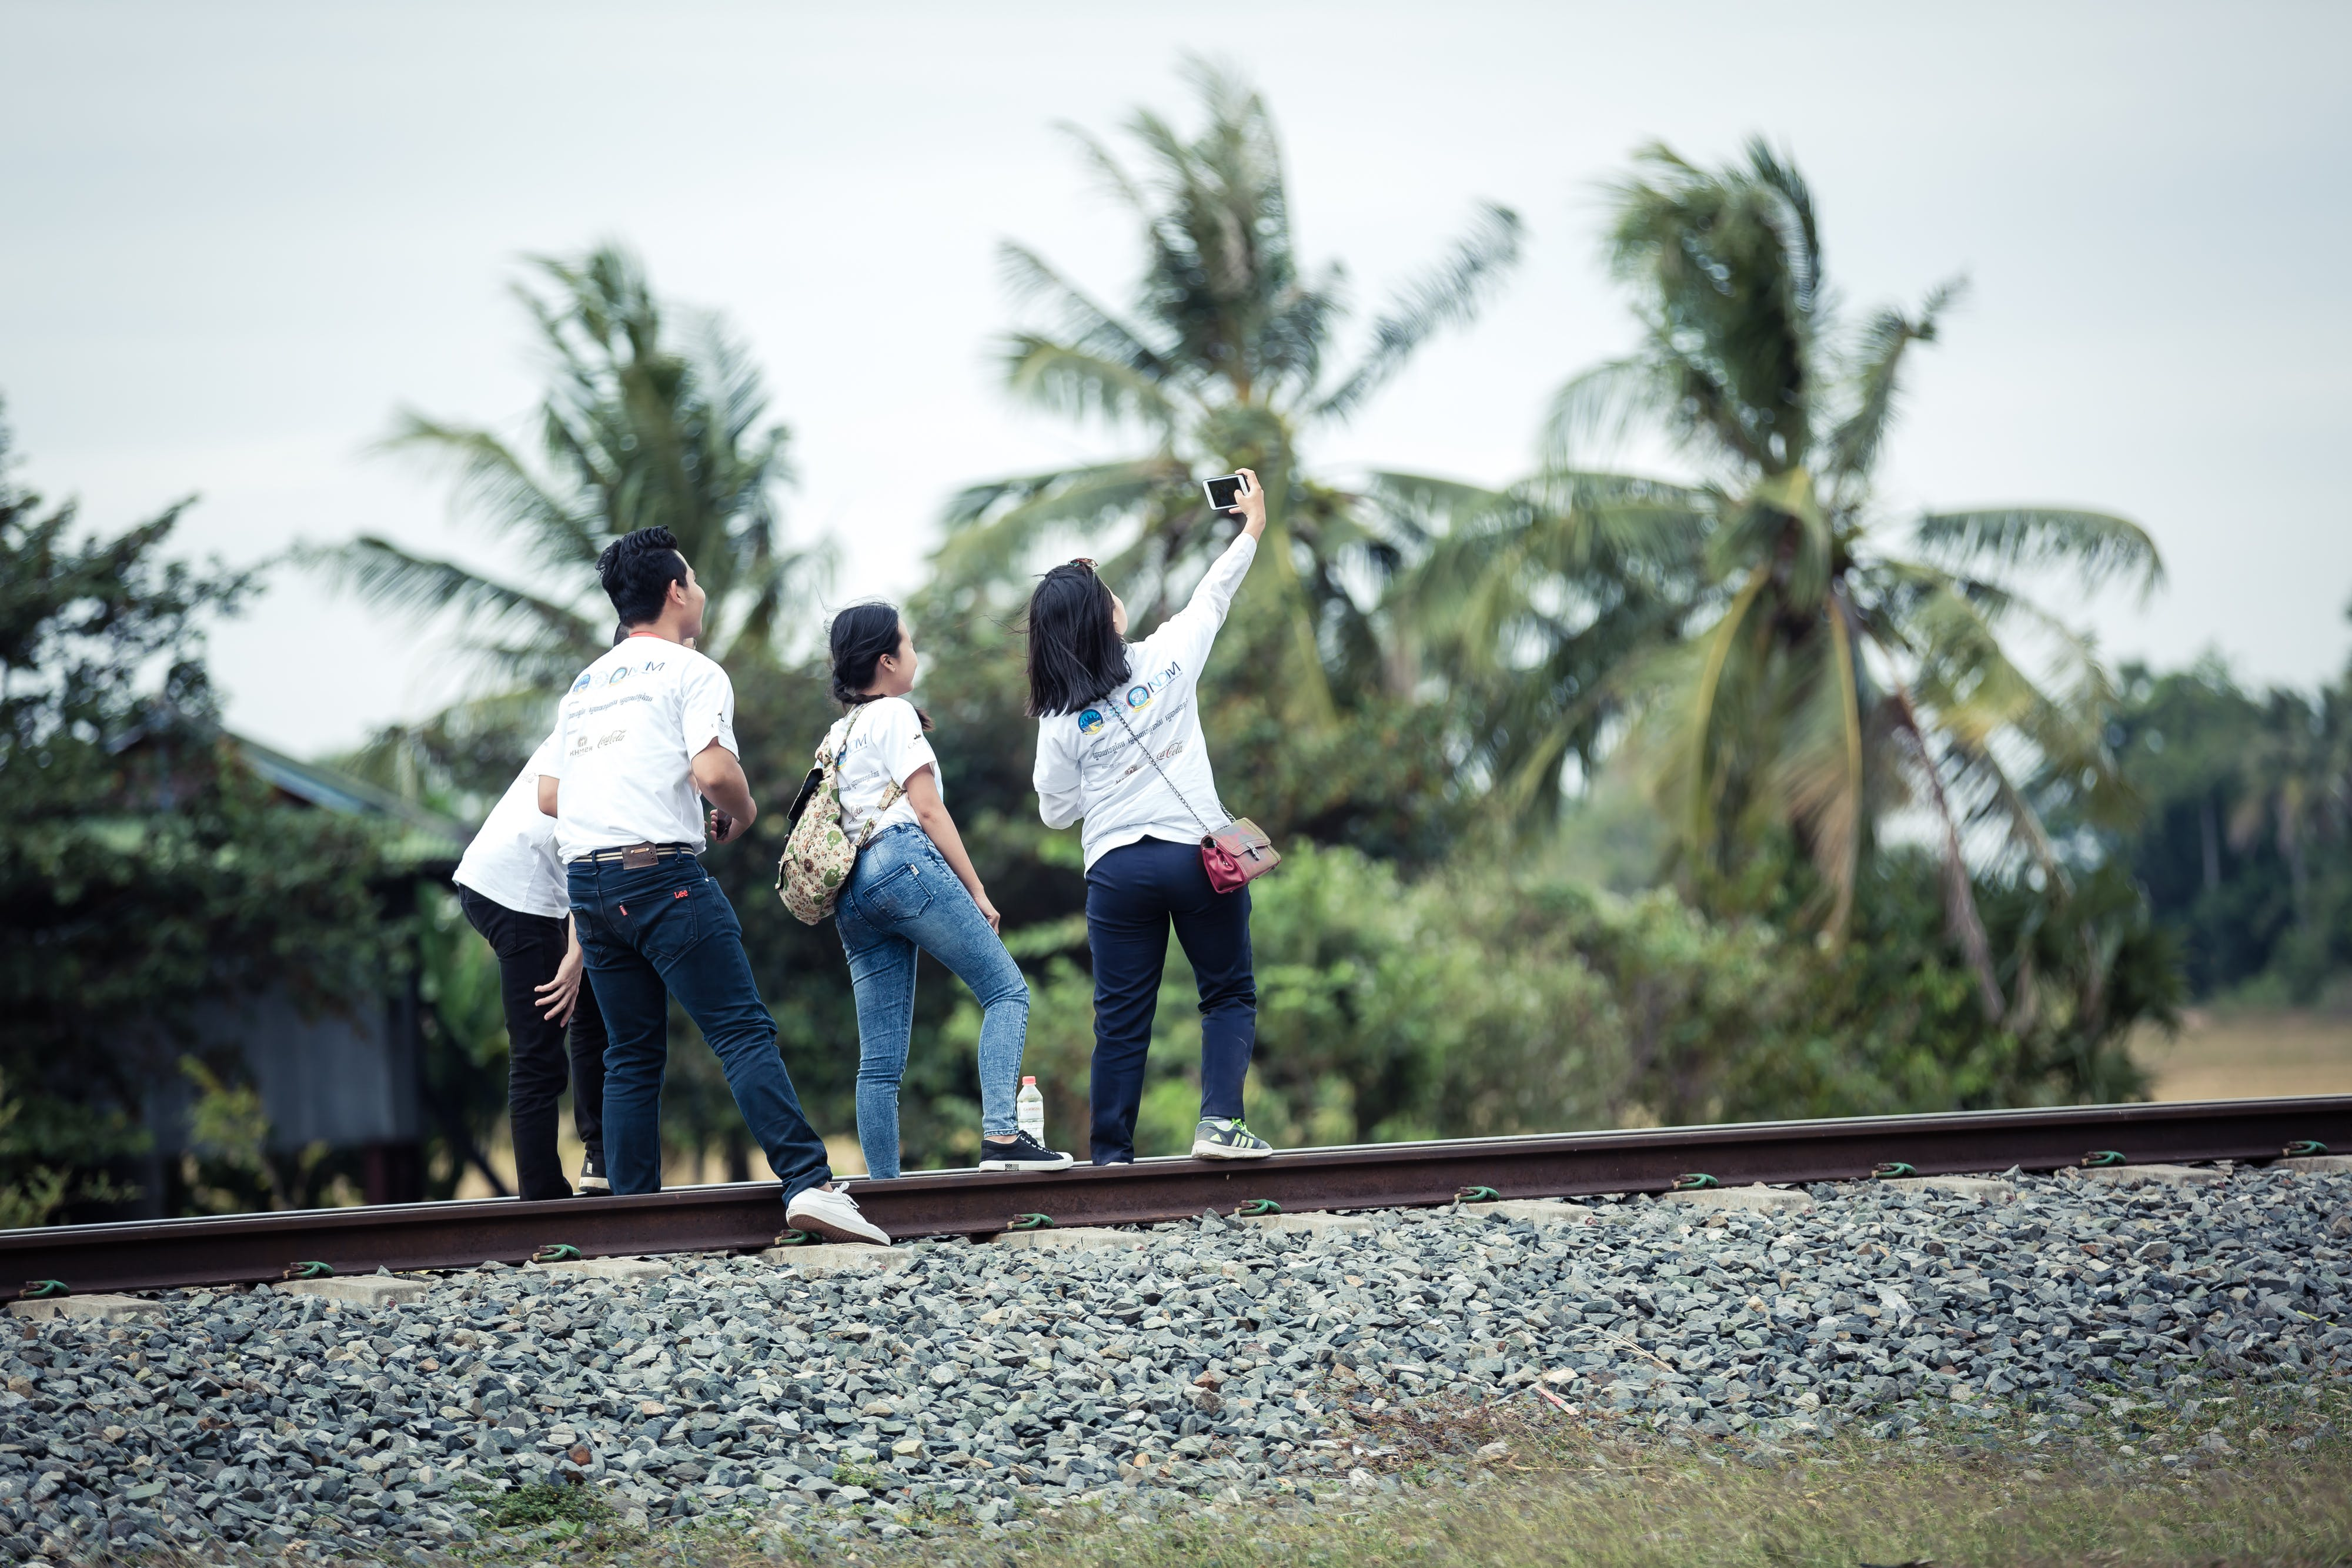 Person Taking a Selfie With Three Persons on Train Railway